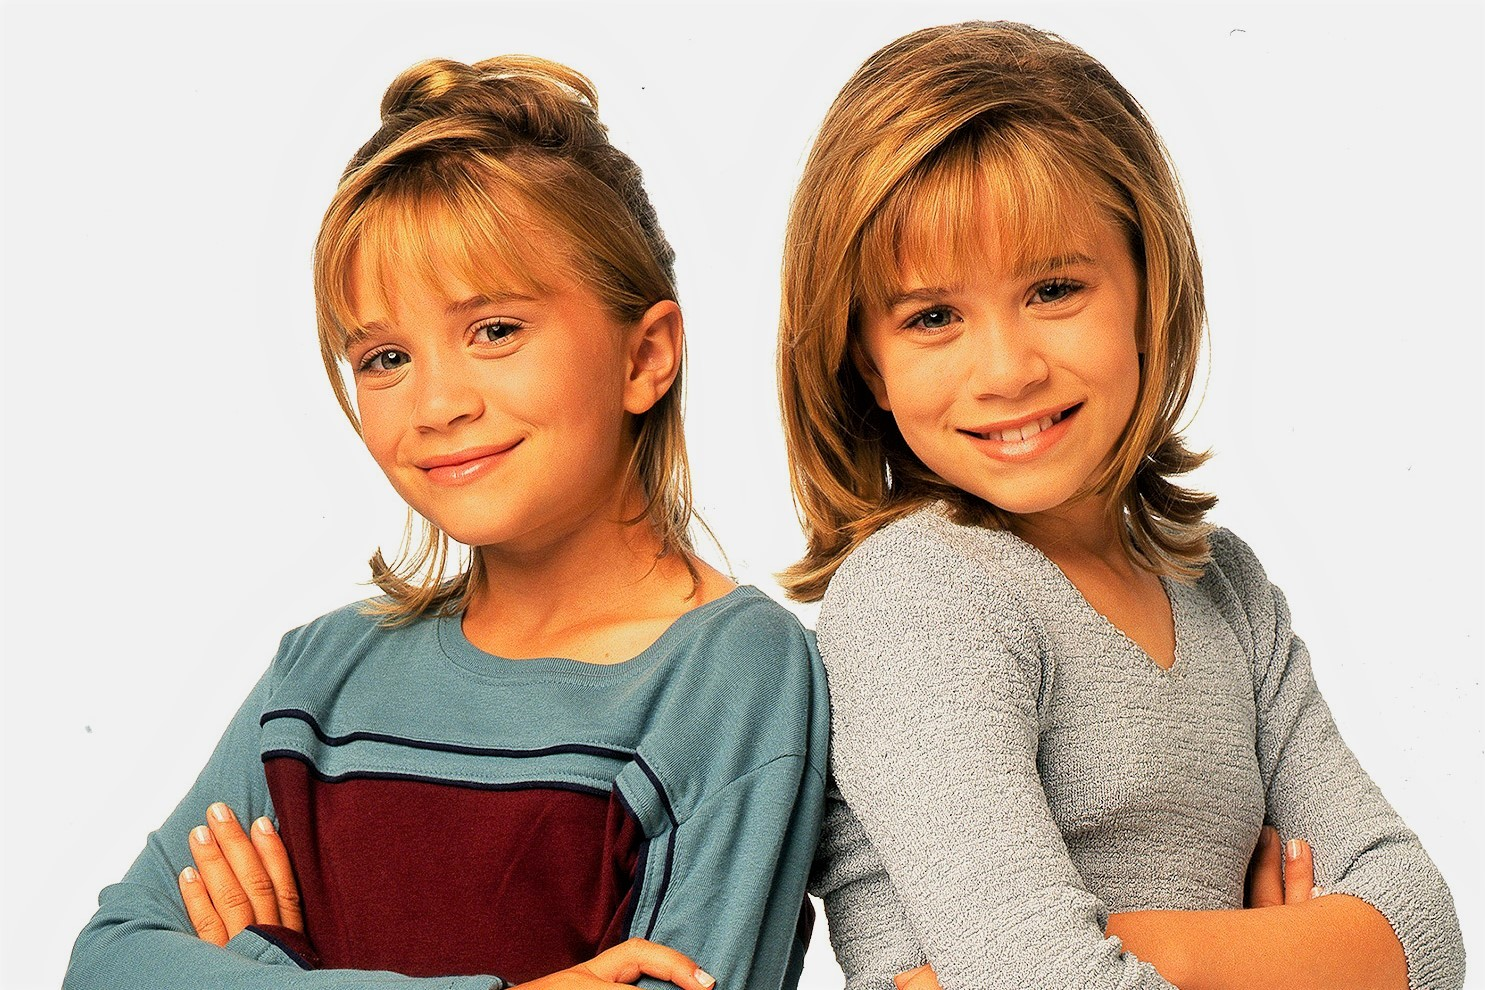 Young Mary-Kate and Ashley Olsen Twins